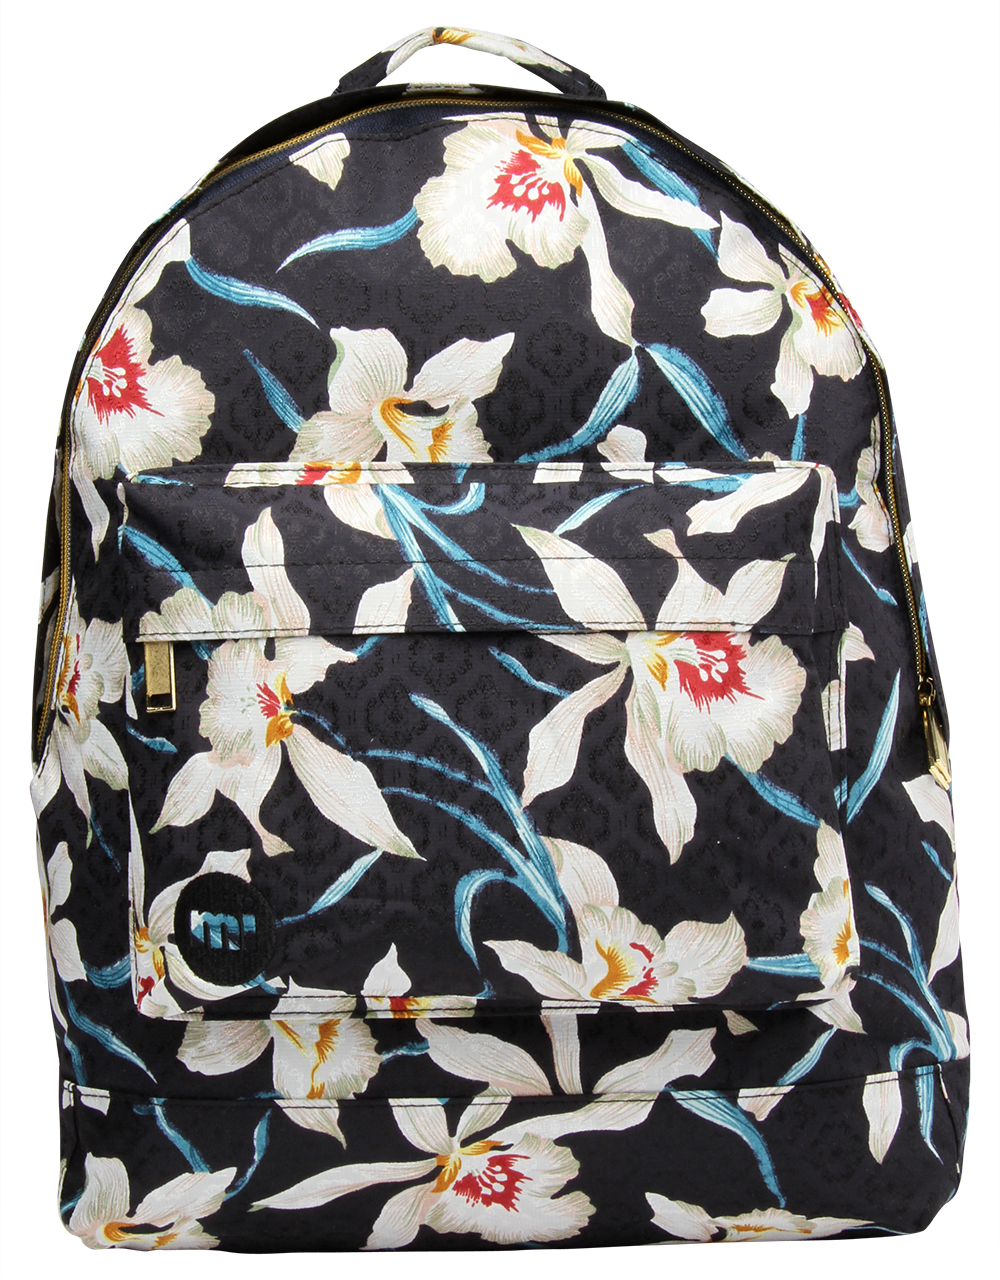 Orchid Navy Backpack P 2,690